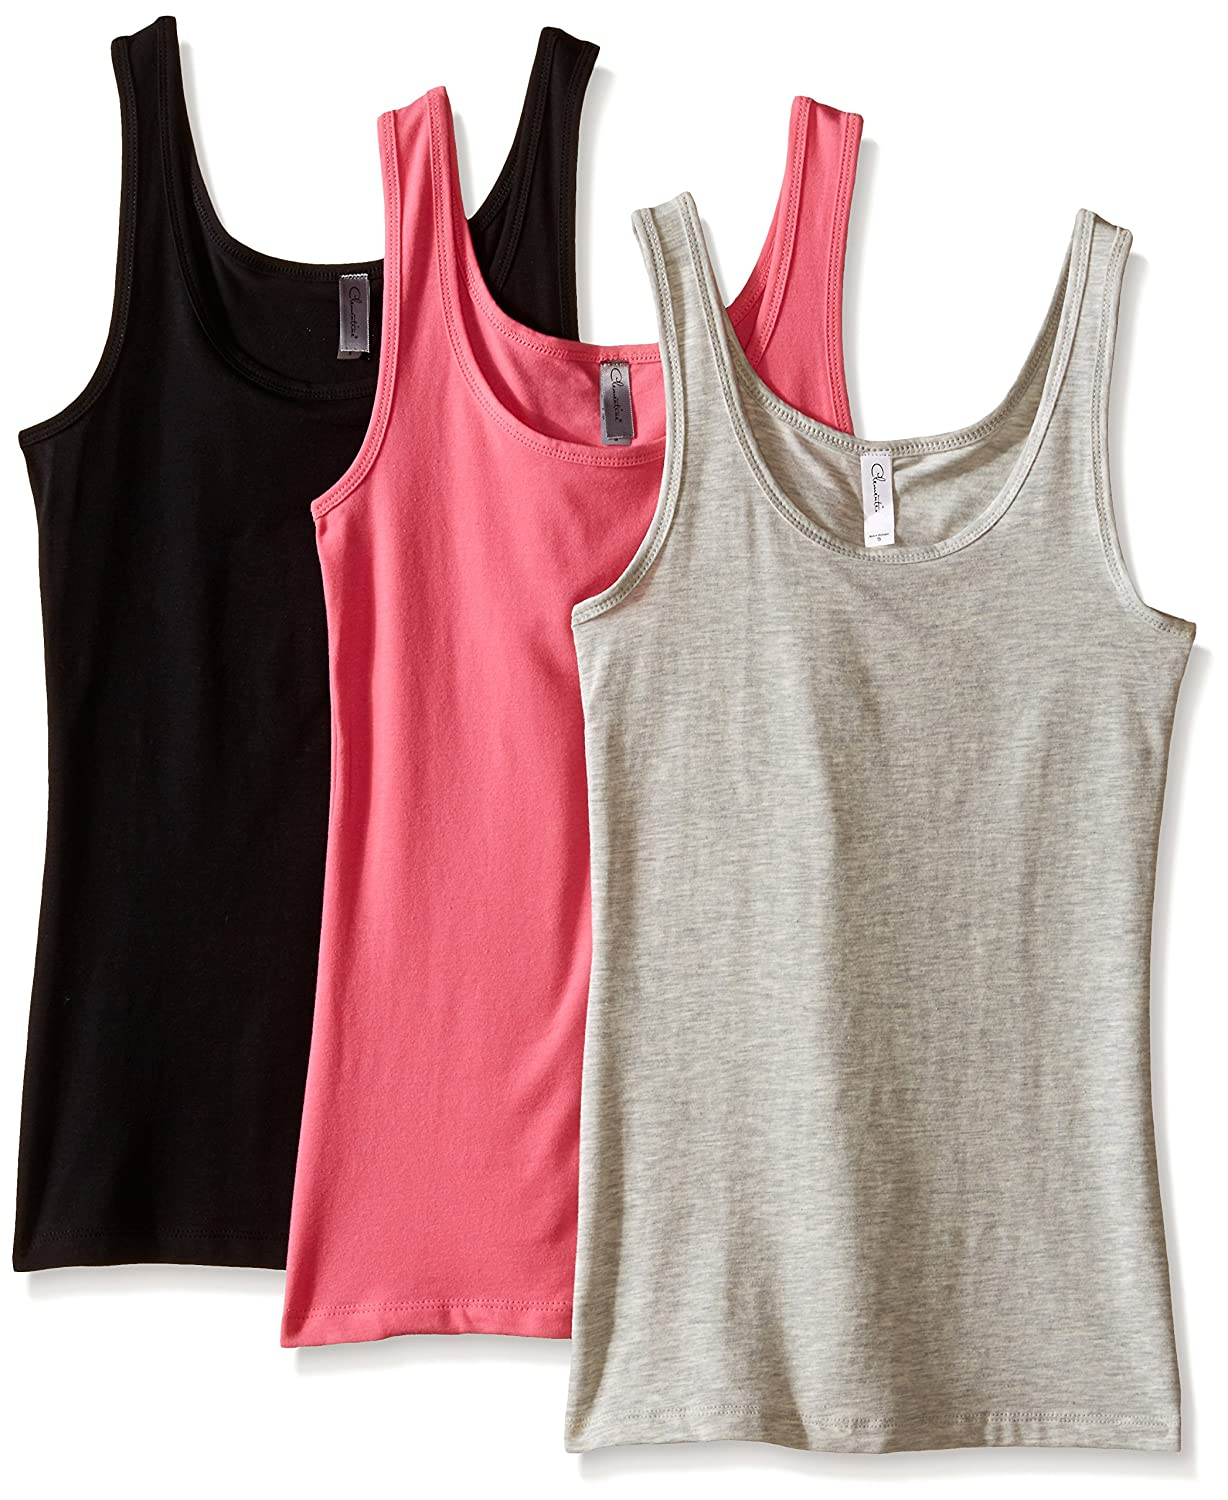 Clementine Women's 2x1 Rib Tank Top (Pack of 3) Clementine Womens Child Code 3-CLM3533